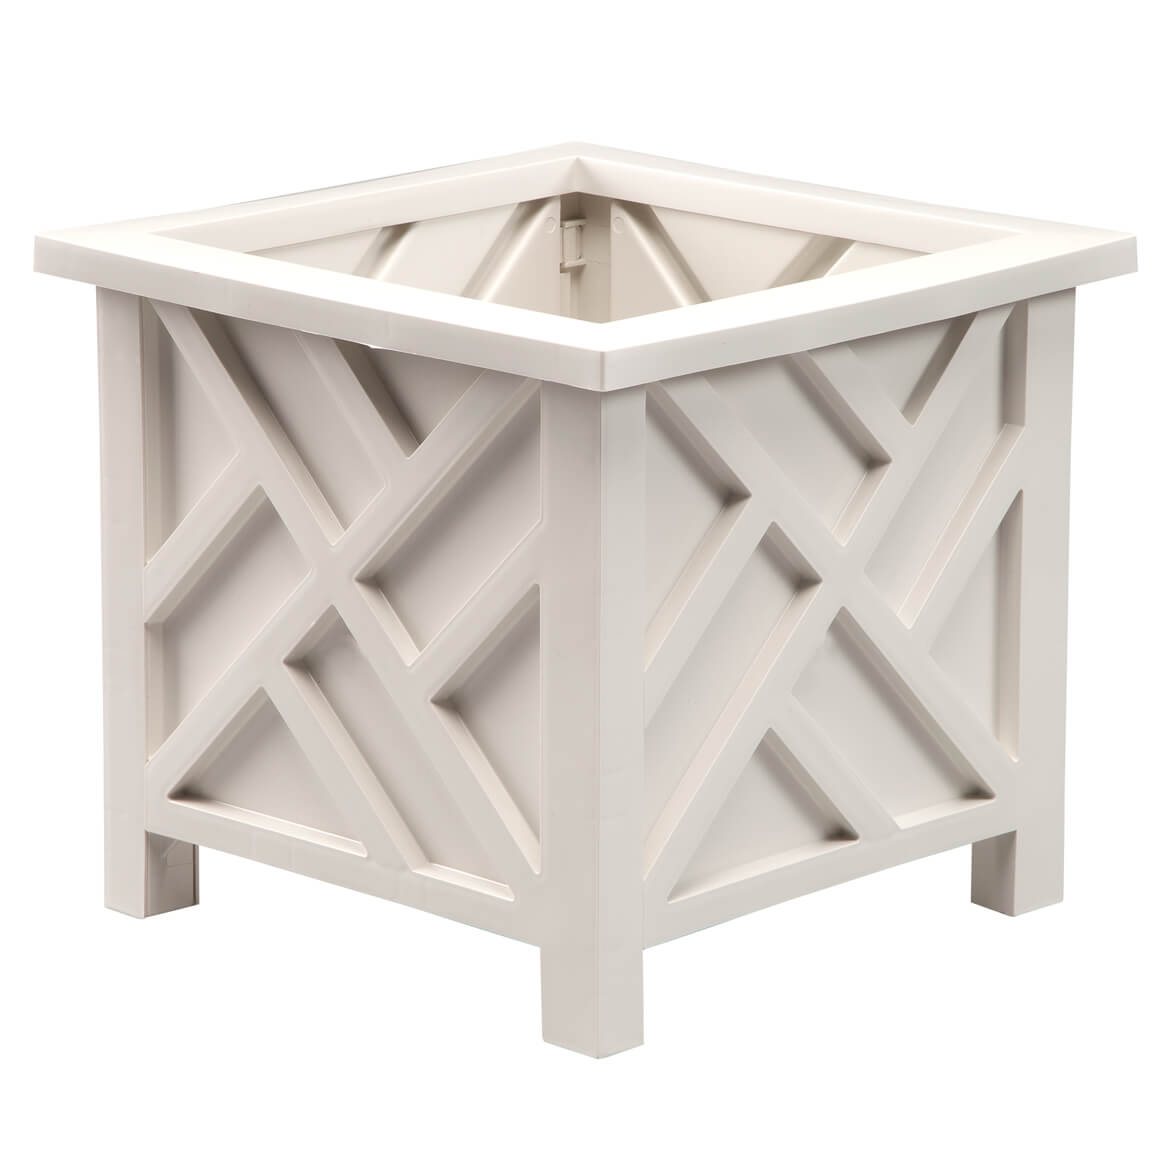 """Chippendale Planter Box, White – Plant Holder for Garden, Patio and Lawn – 14 ¾"""" sq. x 13 ¼ H Overall"""